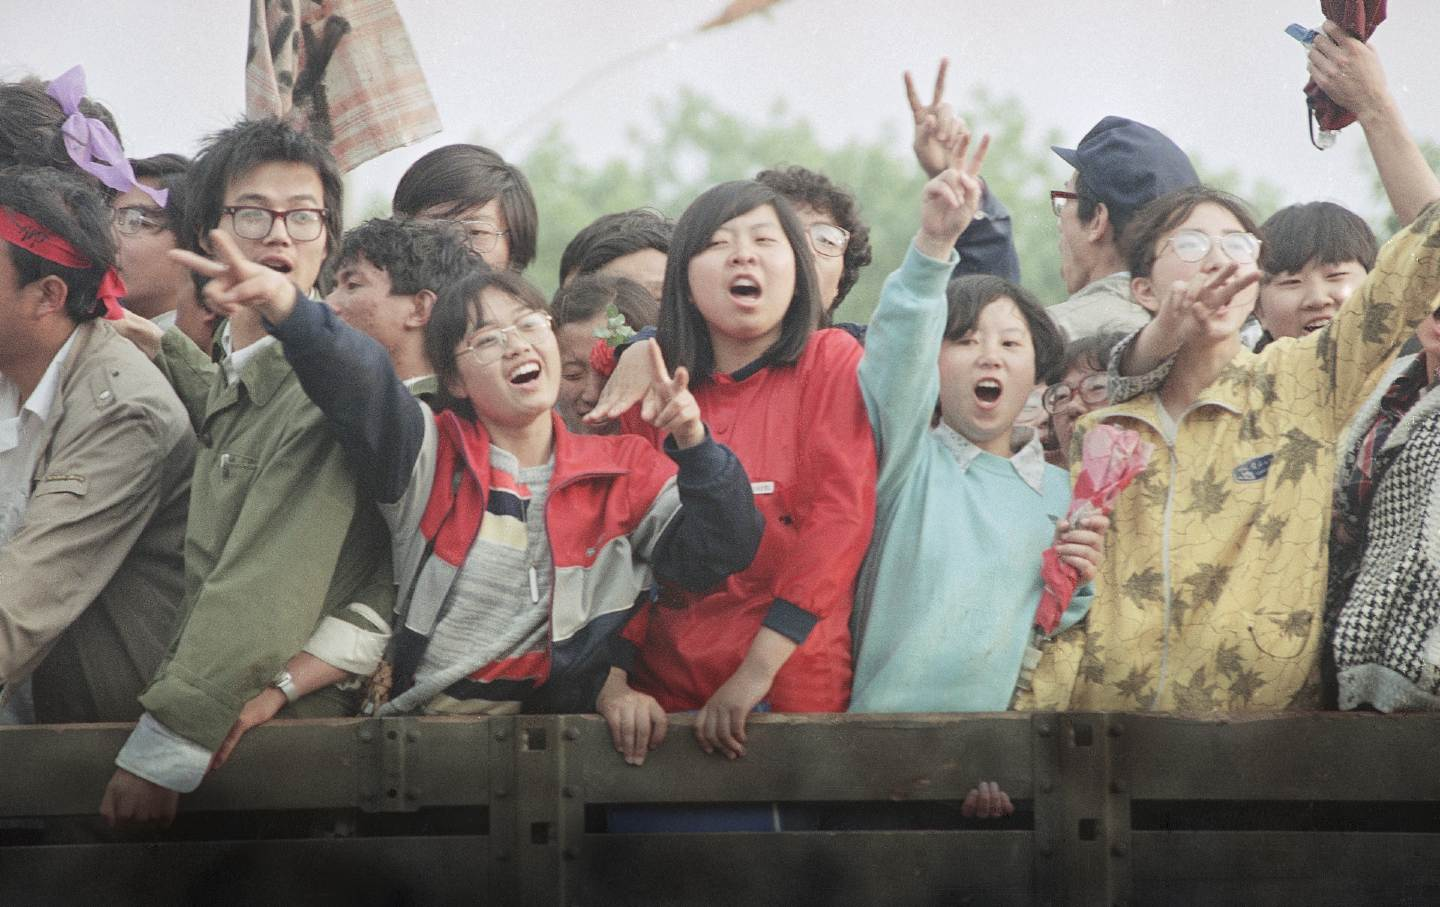 Excited youth